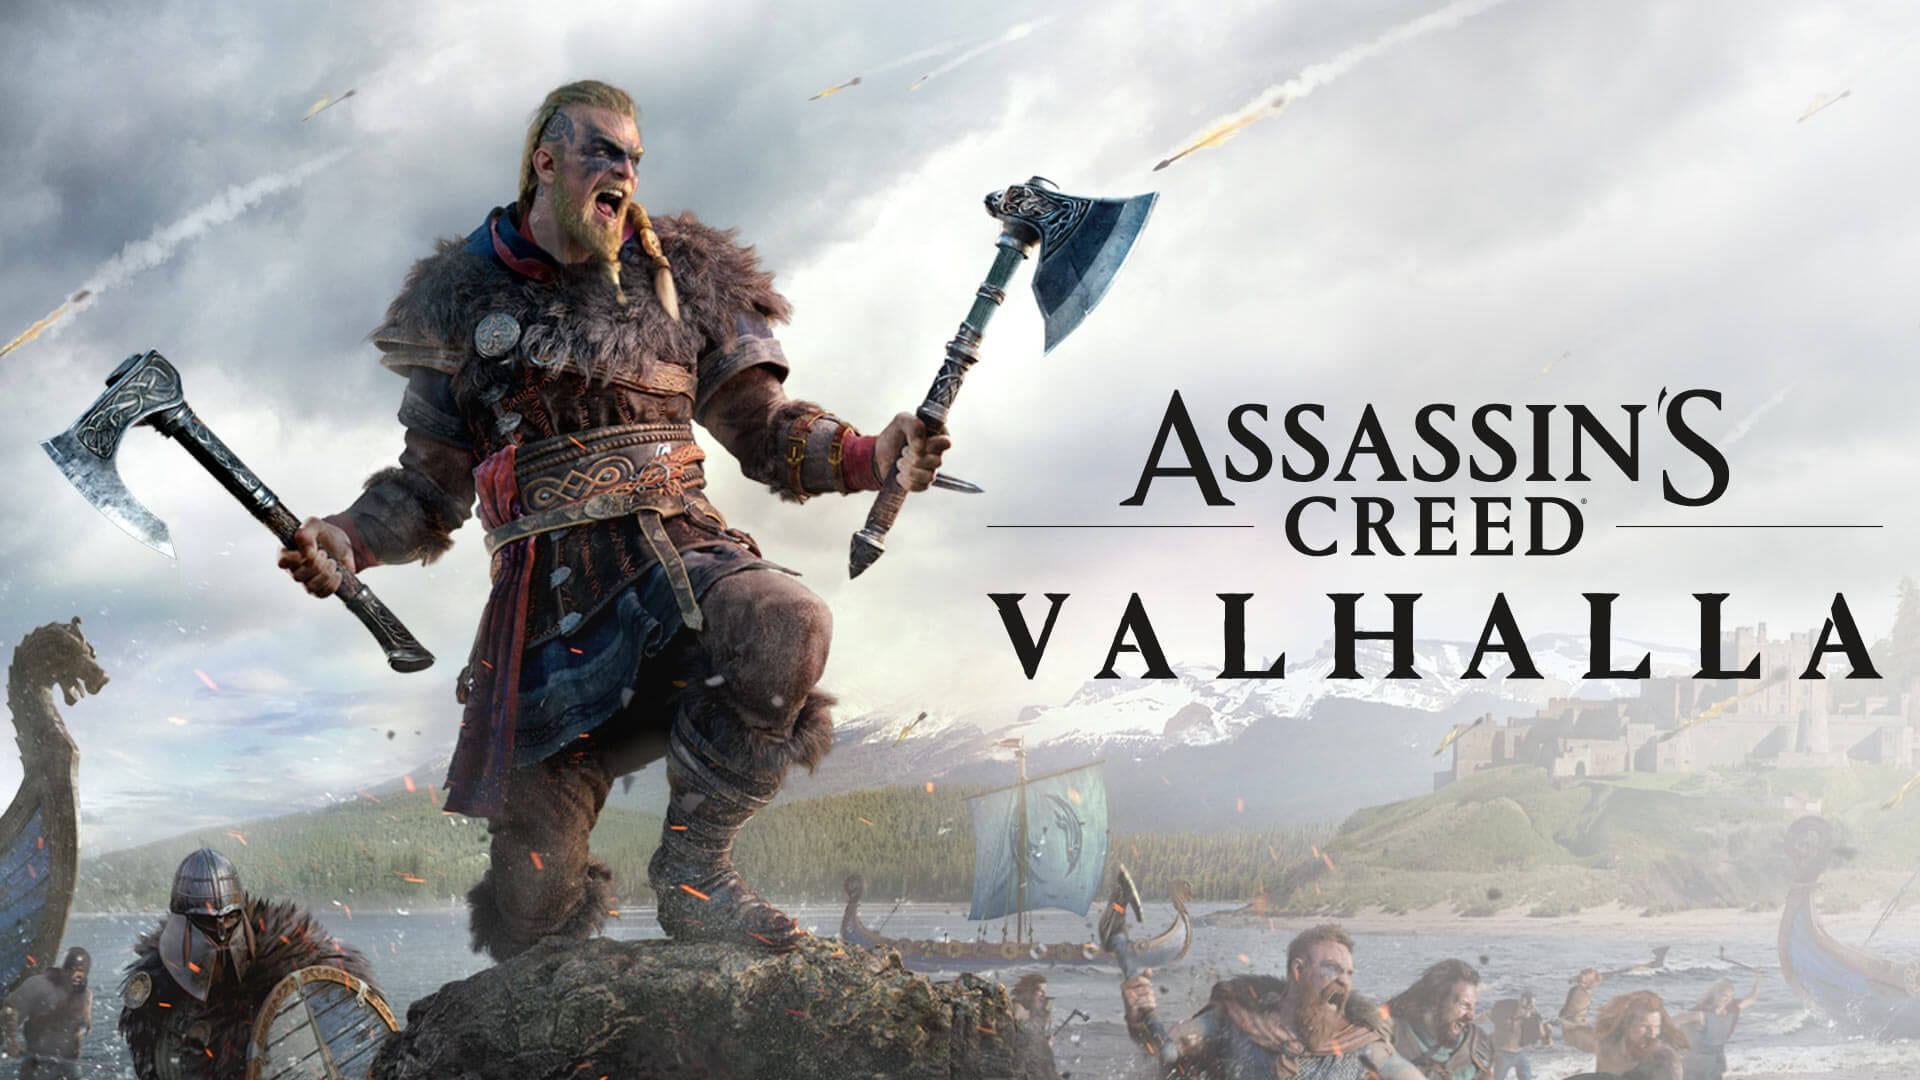 Assassin's Creed Valhalla on the Epic Games Store